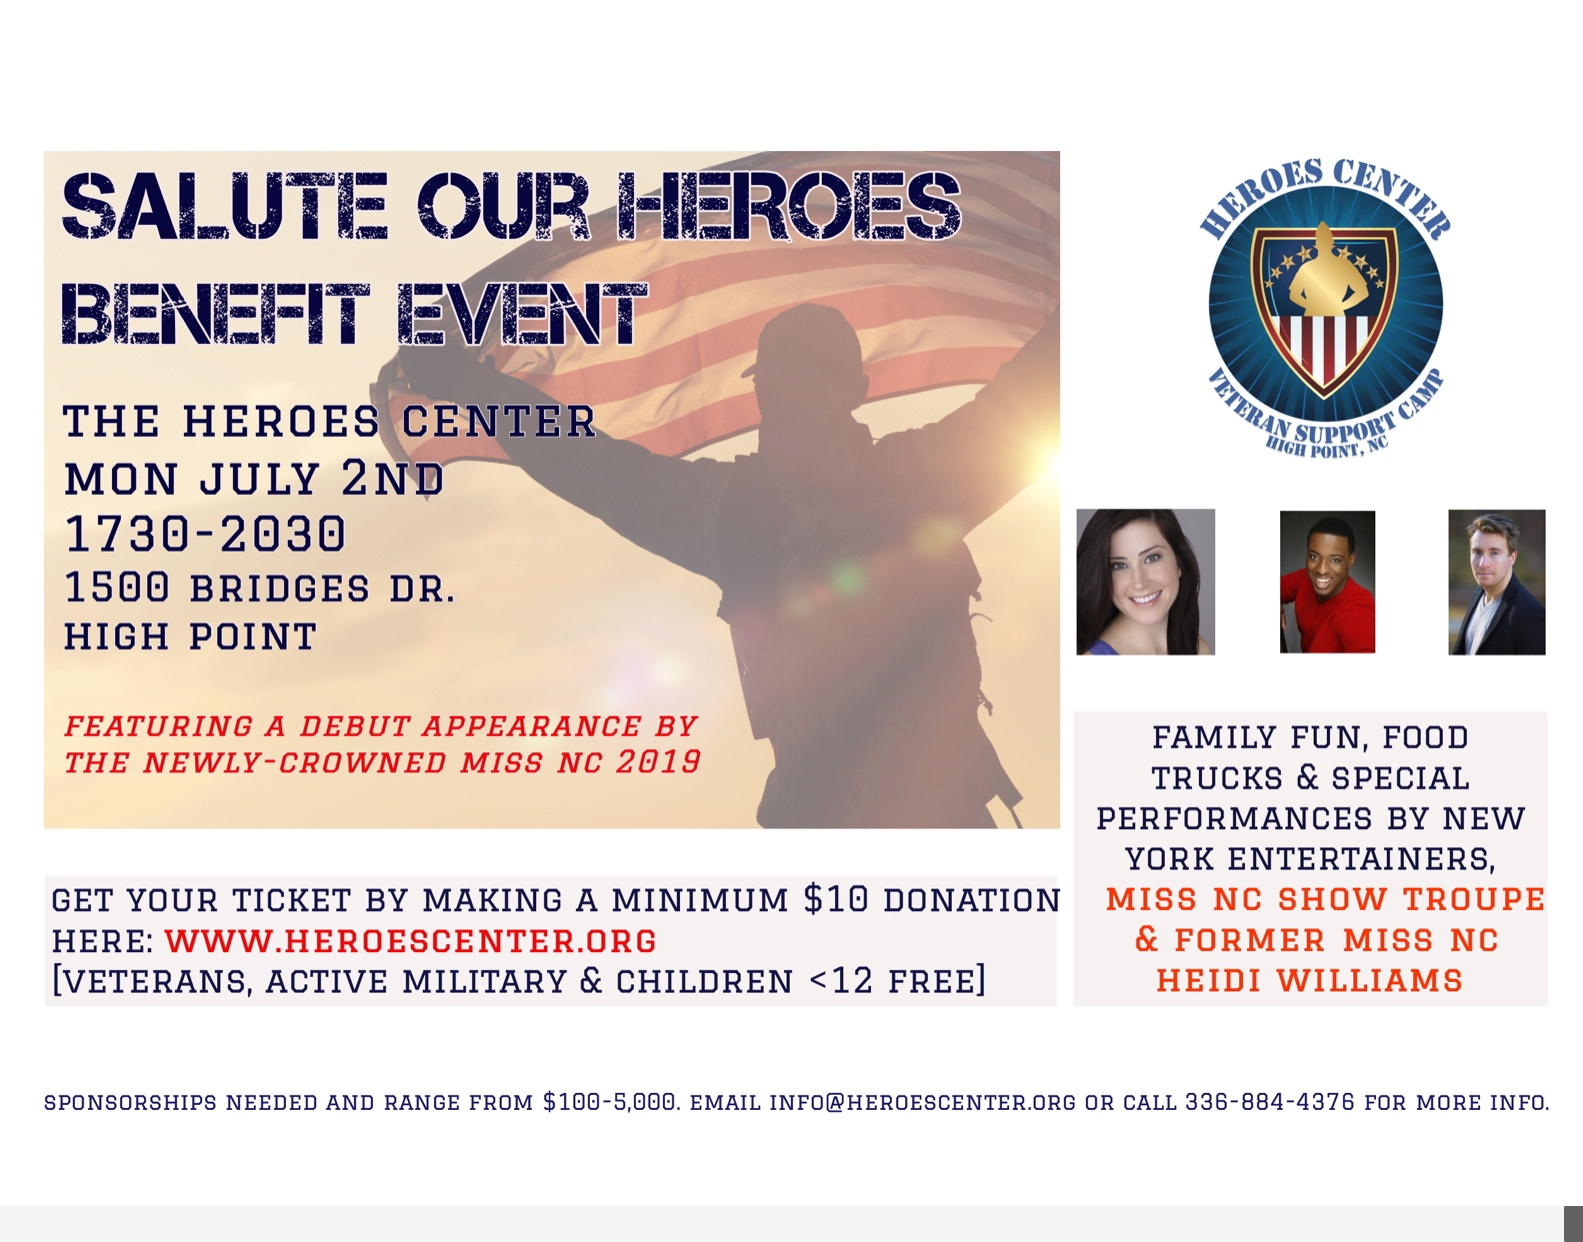 Salute Our Heroes Benefit Event July 2nd in High Point